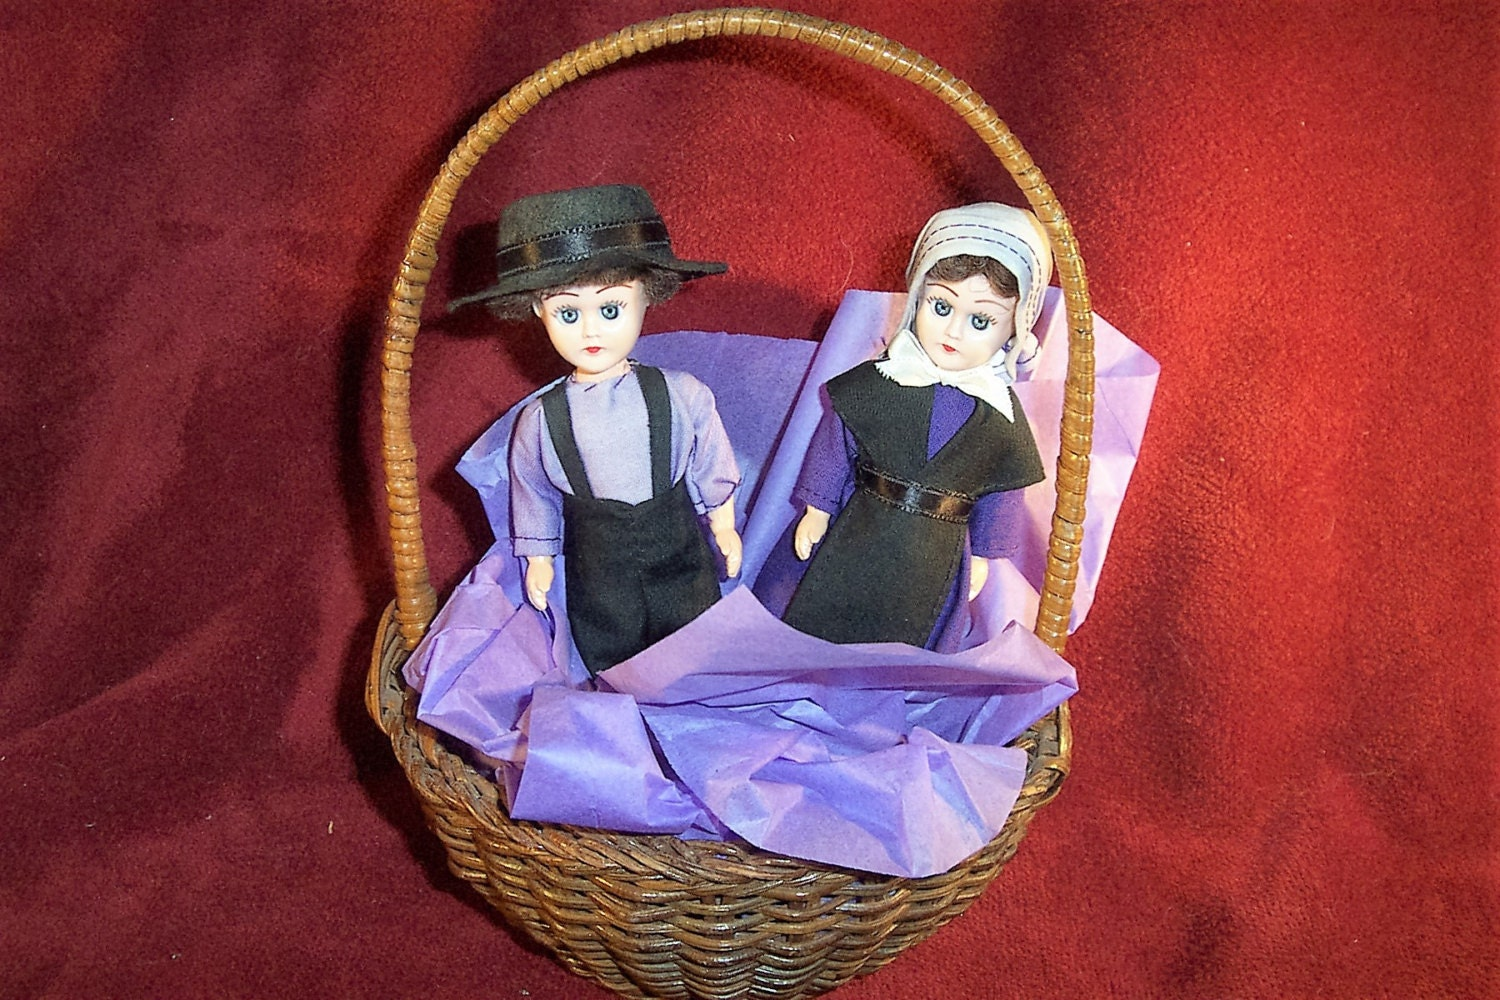 Handmade Baskets In Pa : Amish gift baskets lancaster pa ftempo